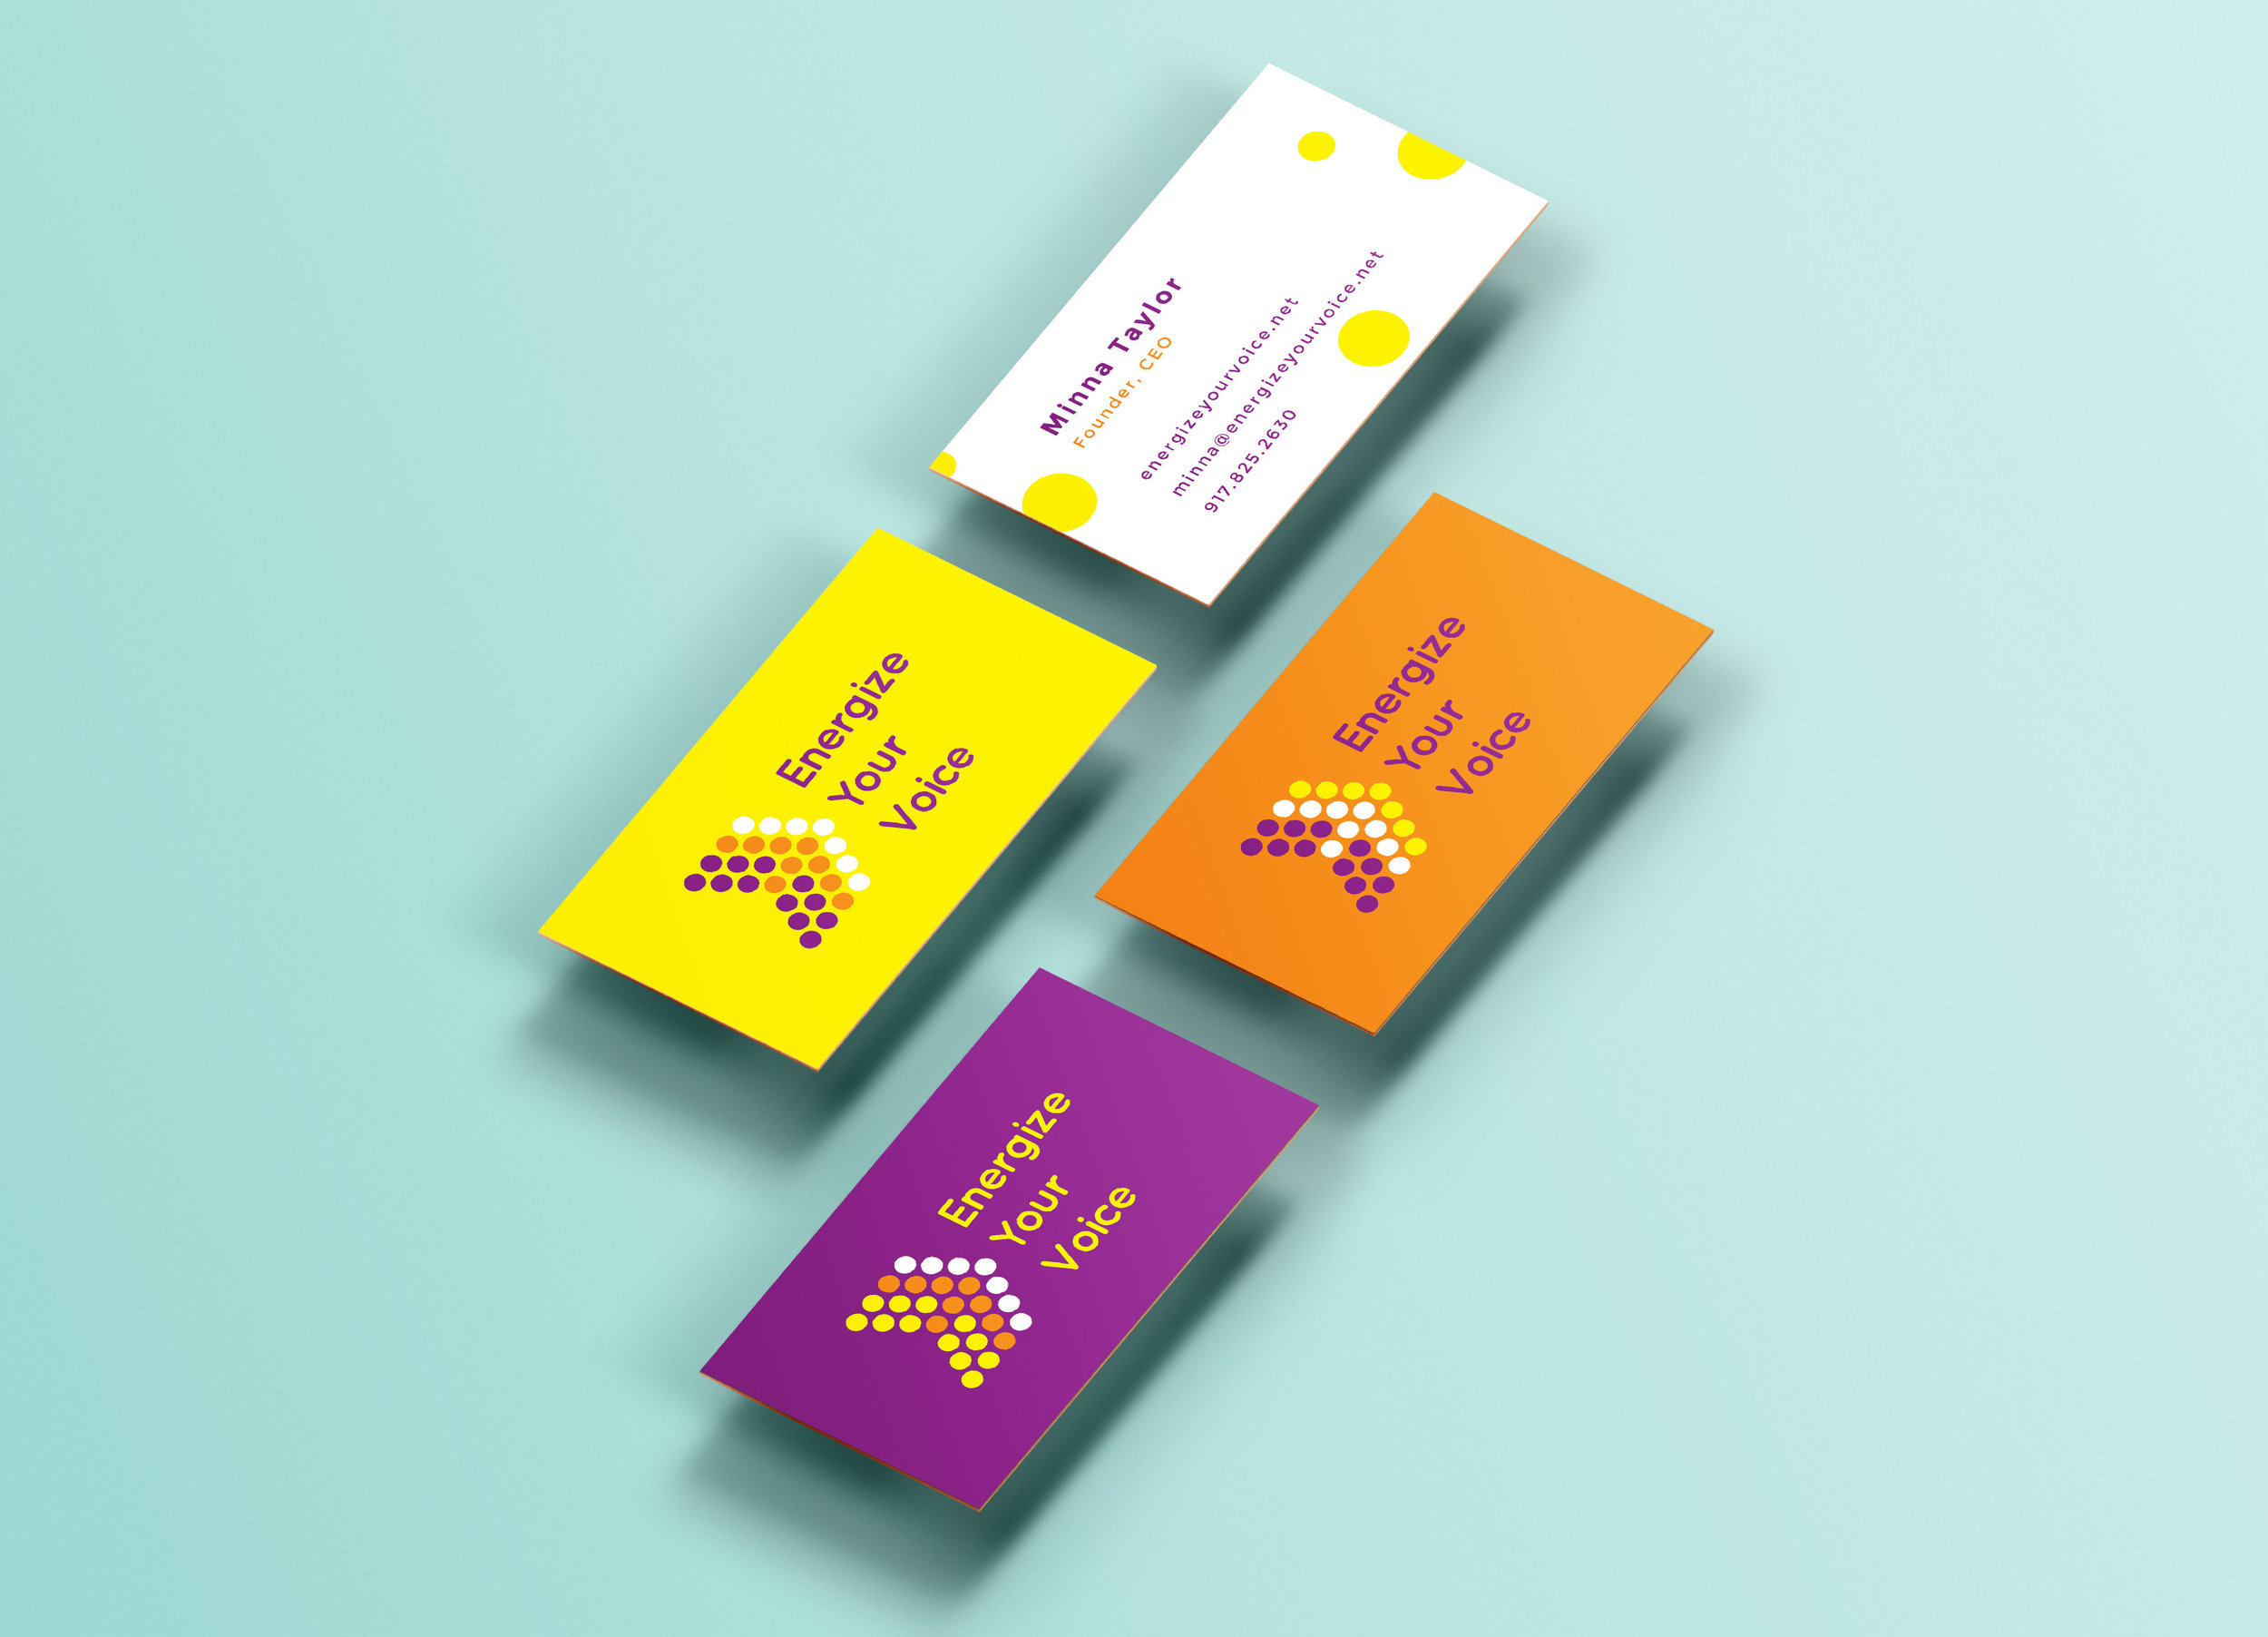 Energize-Your-Voice-Business-Cards-for-website-mockup.jpg